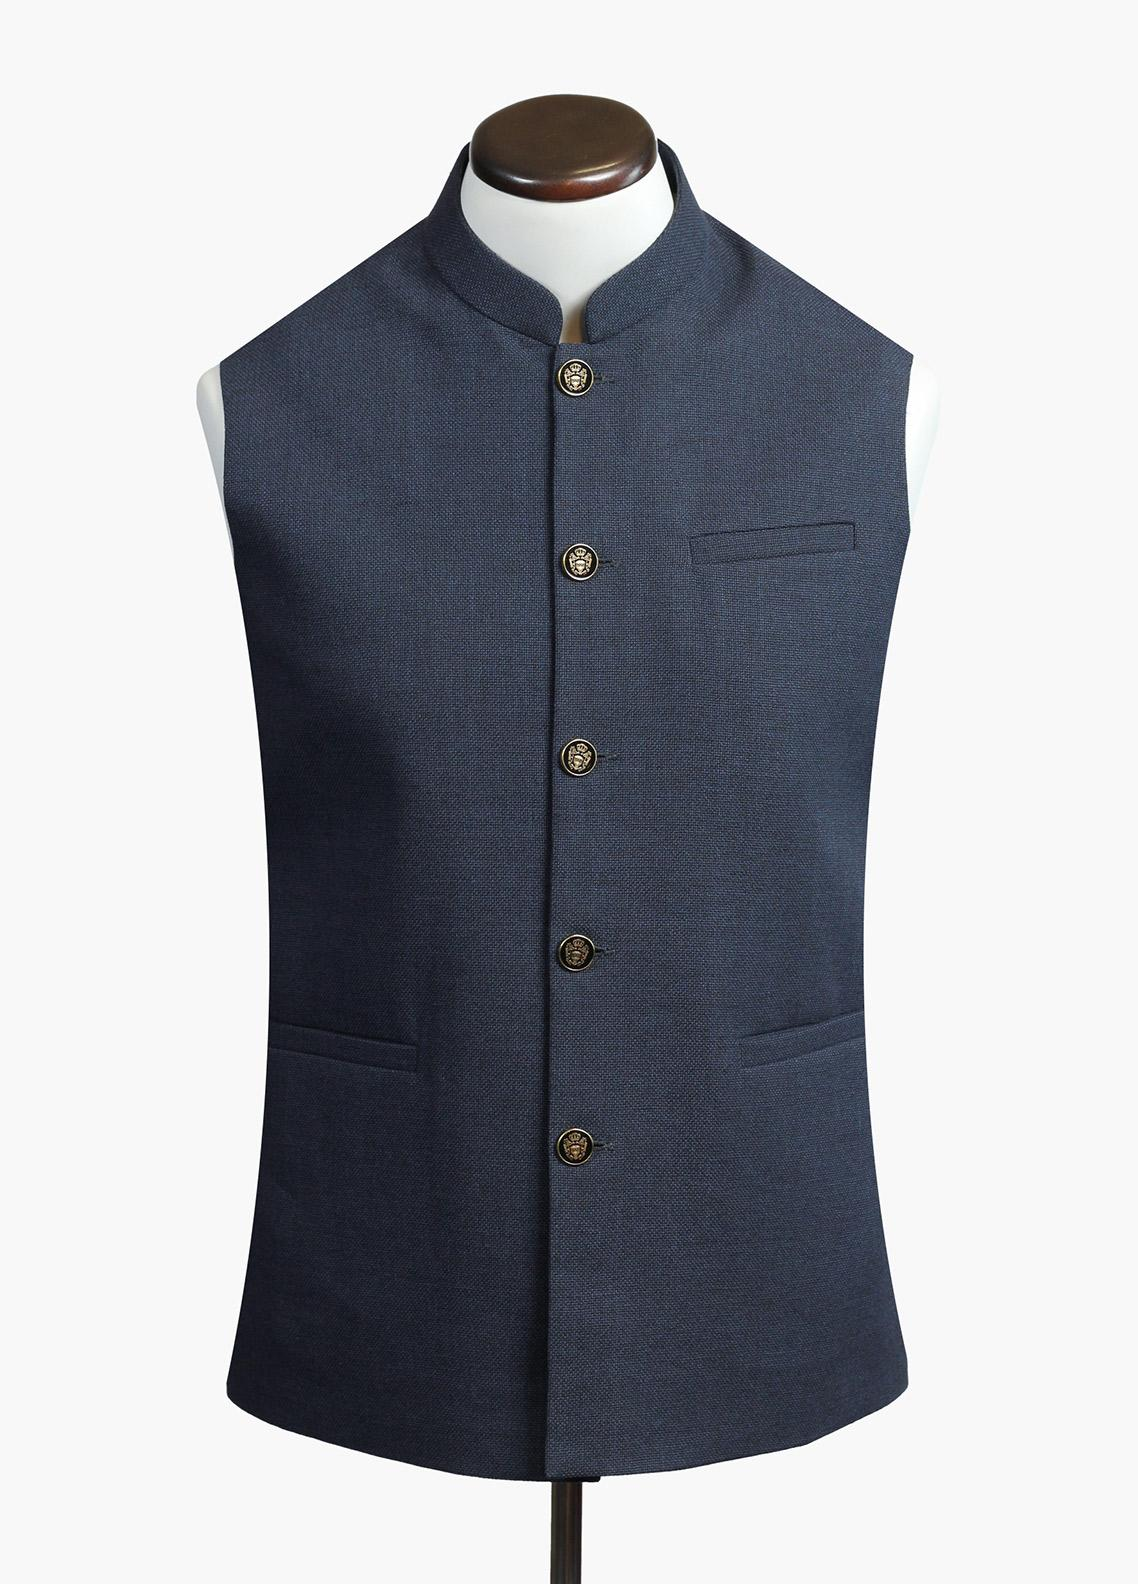 Brumano Cotton Formal Men Waistcoat - Blue BRM-723